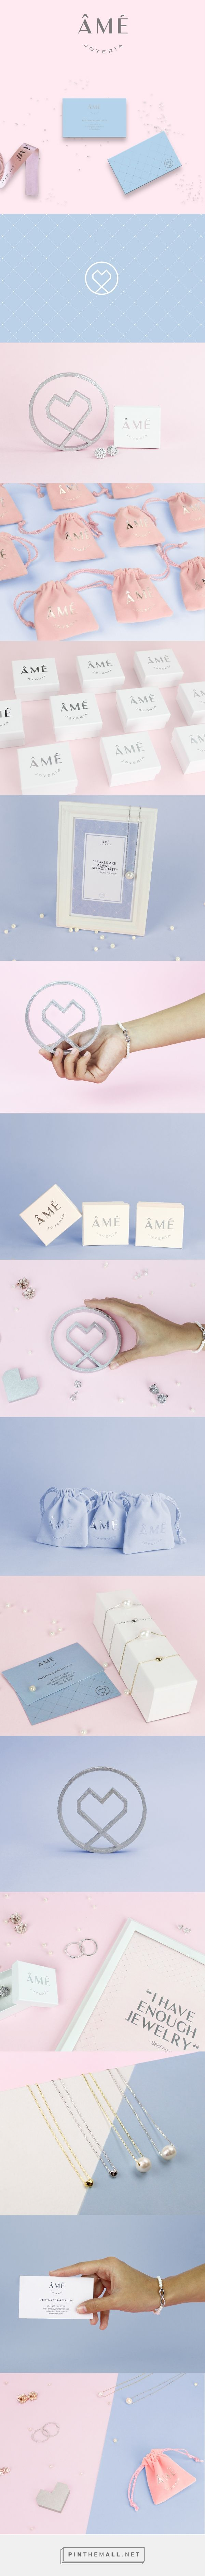 AME Joyeria Jewelry Branding and Packaging by Puro Diseno | Fivestar Branding – Design and Branding Agency & Inspiration Gallery | #BrandingInspiration  www.purodiseno.rocks